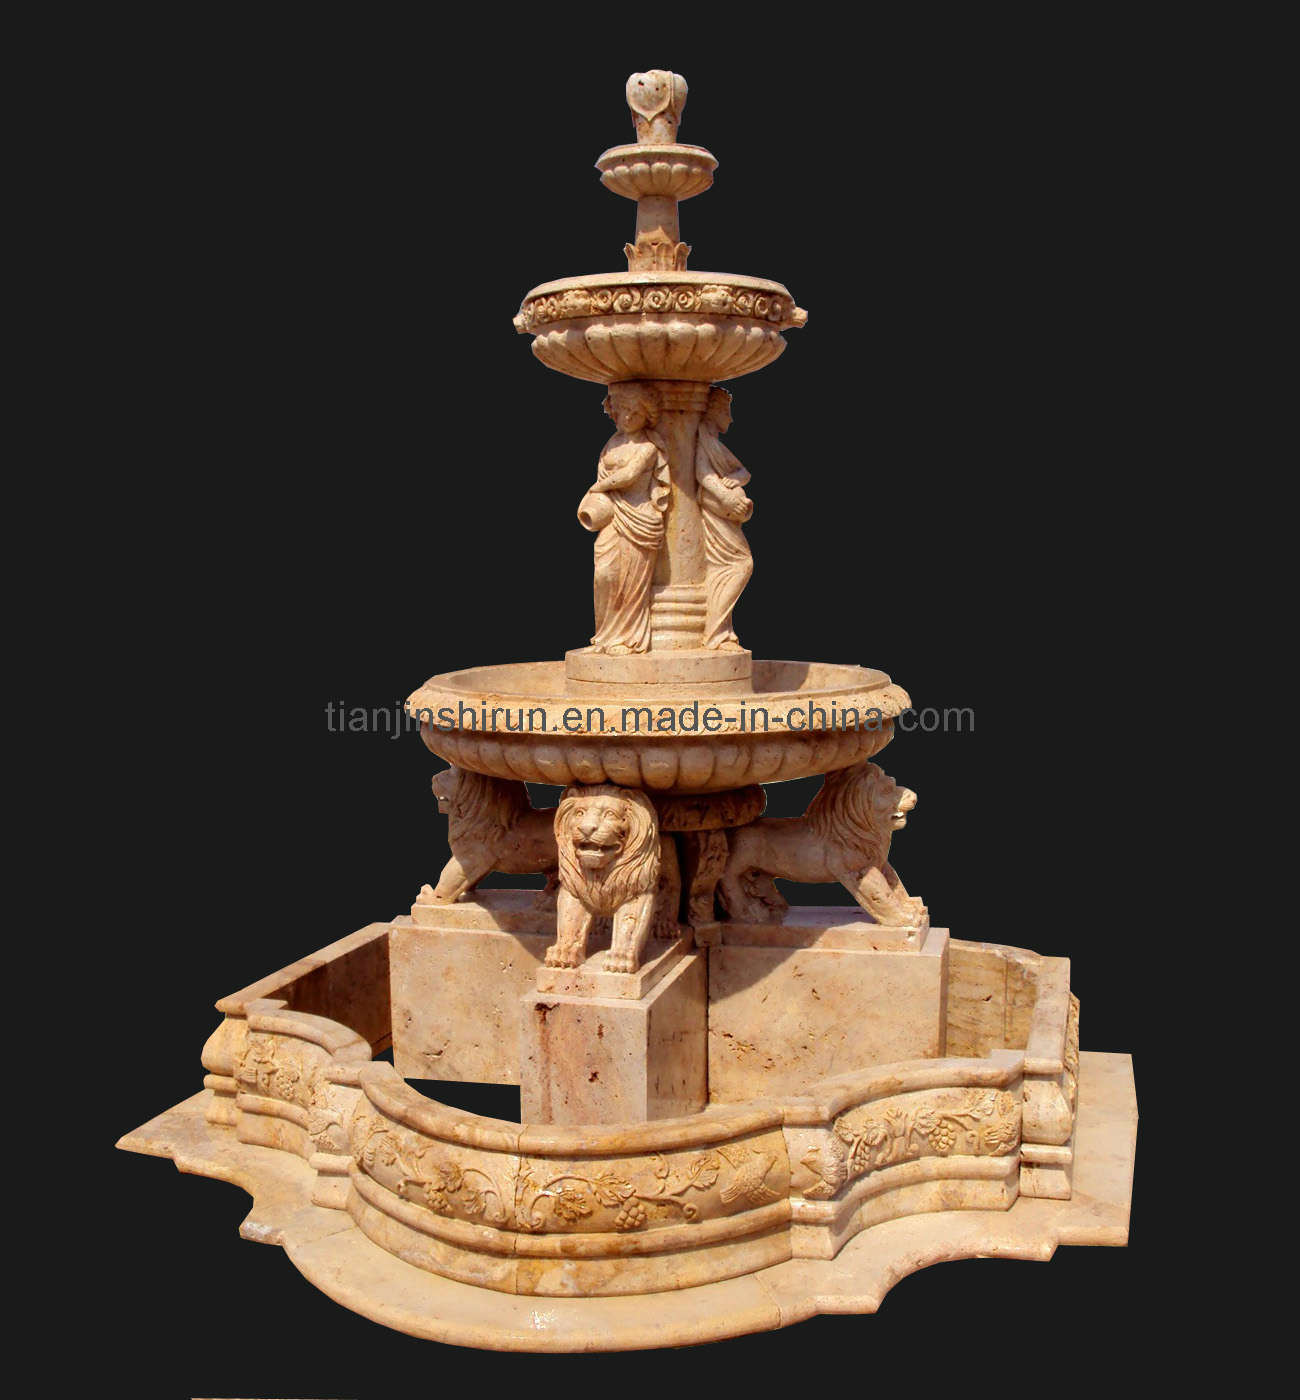 3 Tier Marble Stone Fountain, Water Garden Fountain (XF400)